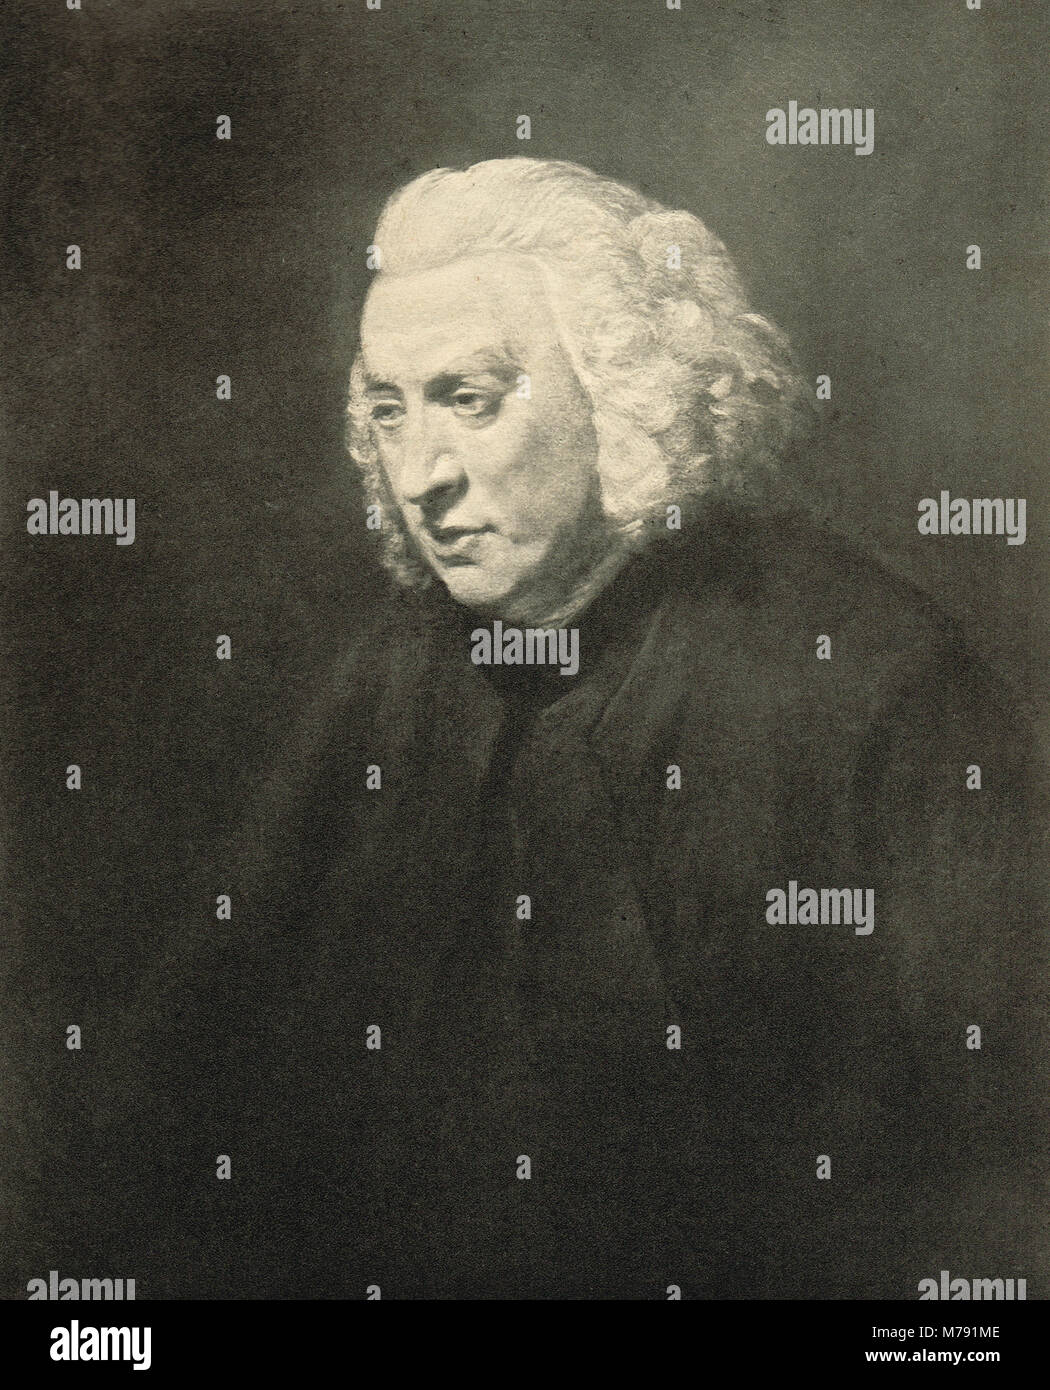 Dr Samuel Johnson lexicographer (1709-84)  Author of A Dictionary of the English Language published in 1755 - Stock Image